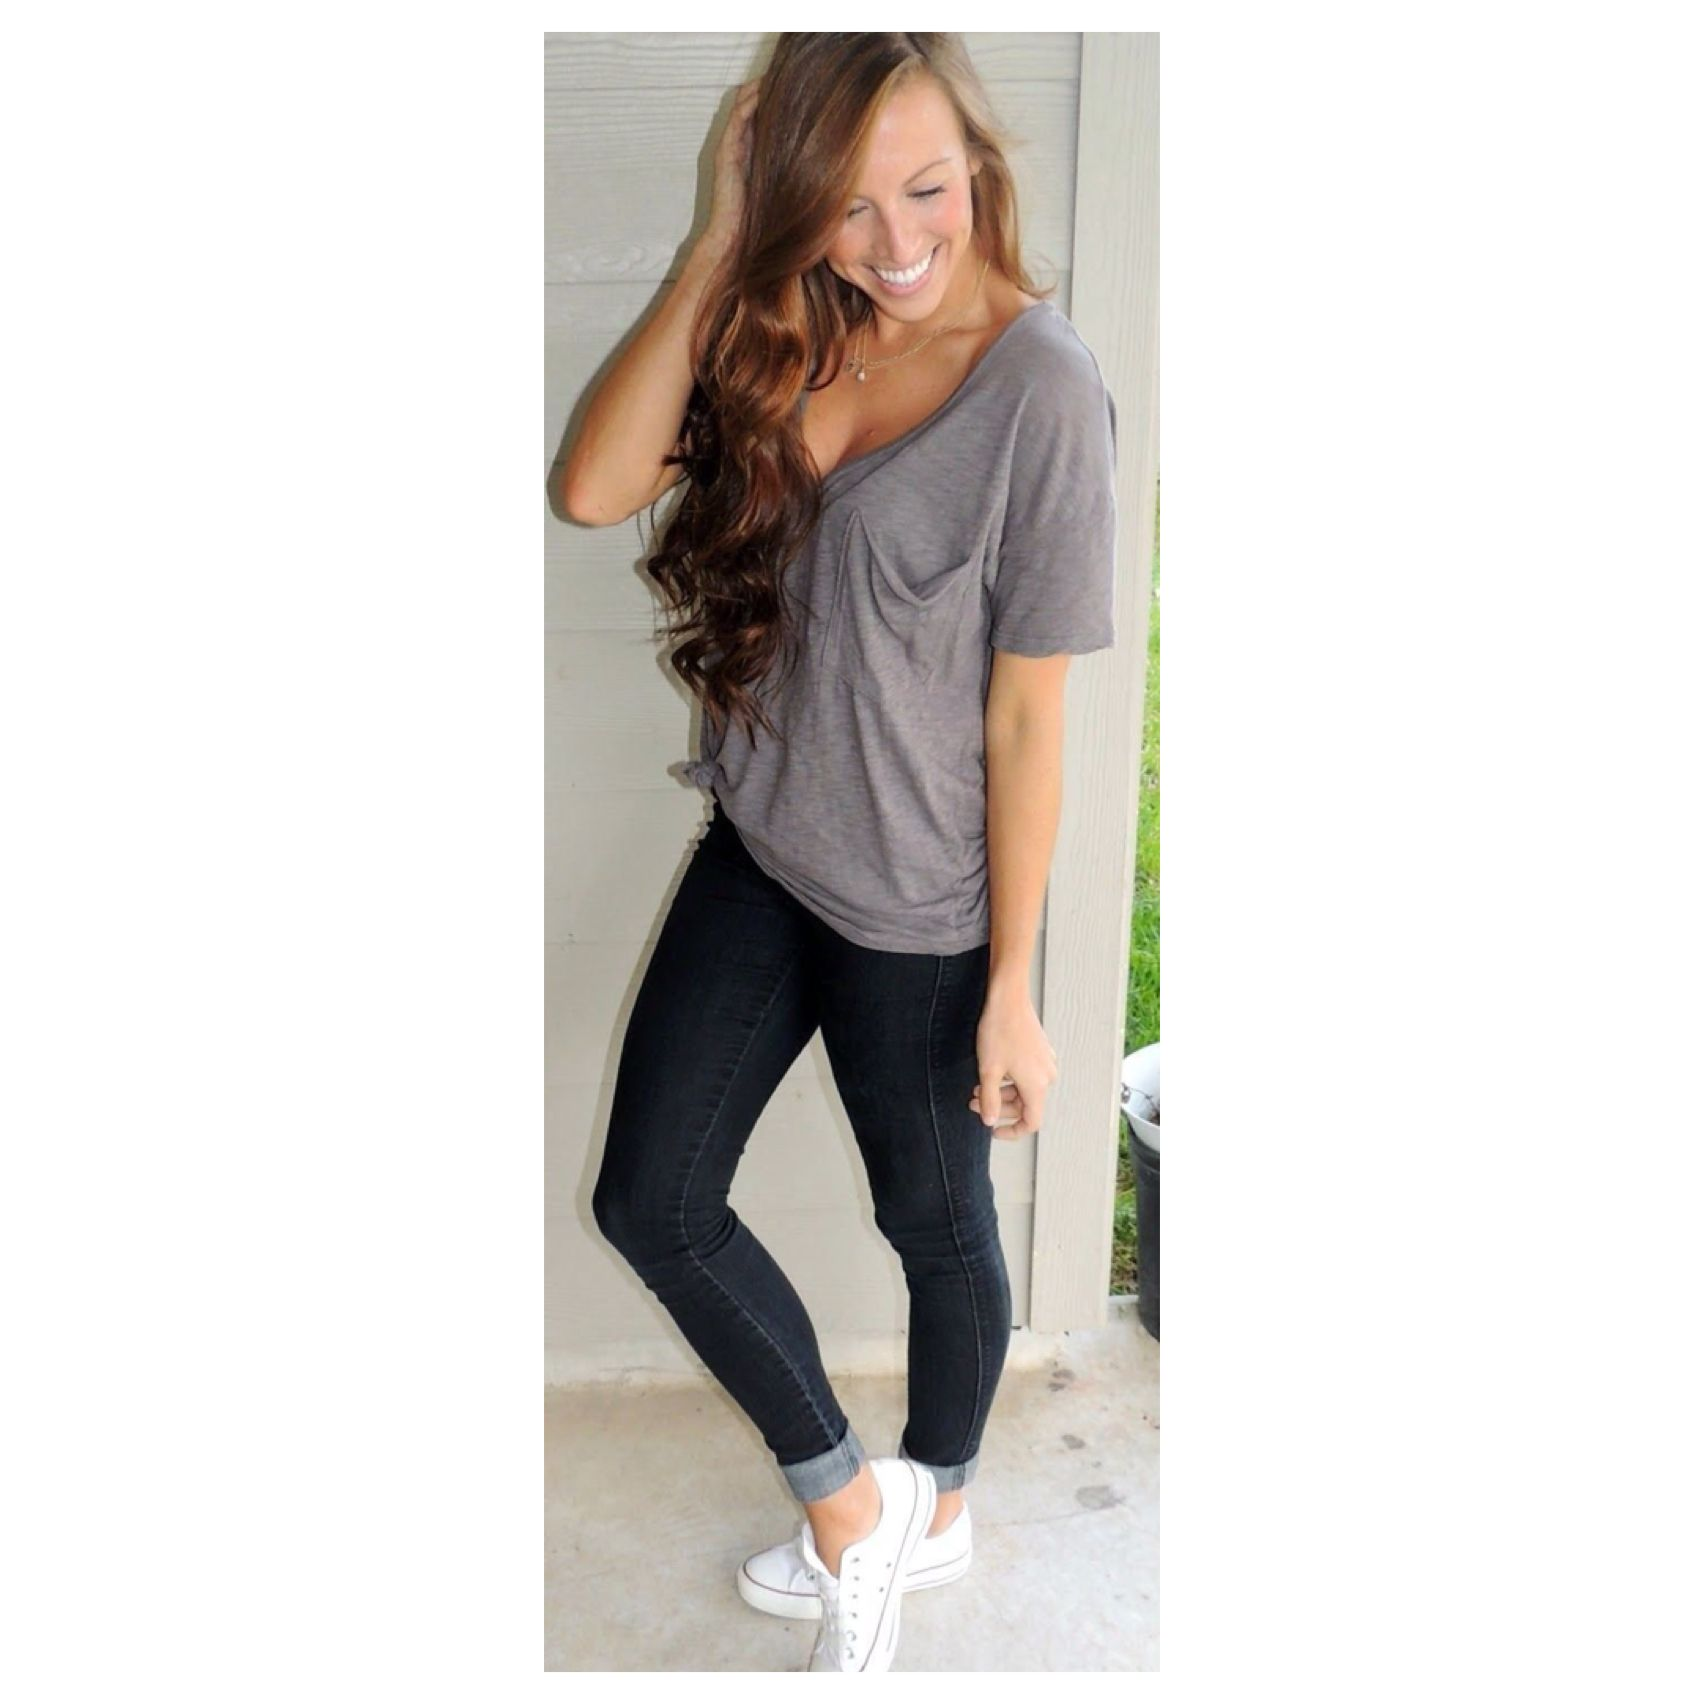 Cute & Casual Summer Outfit | Clothing | Casual summer ...